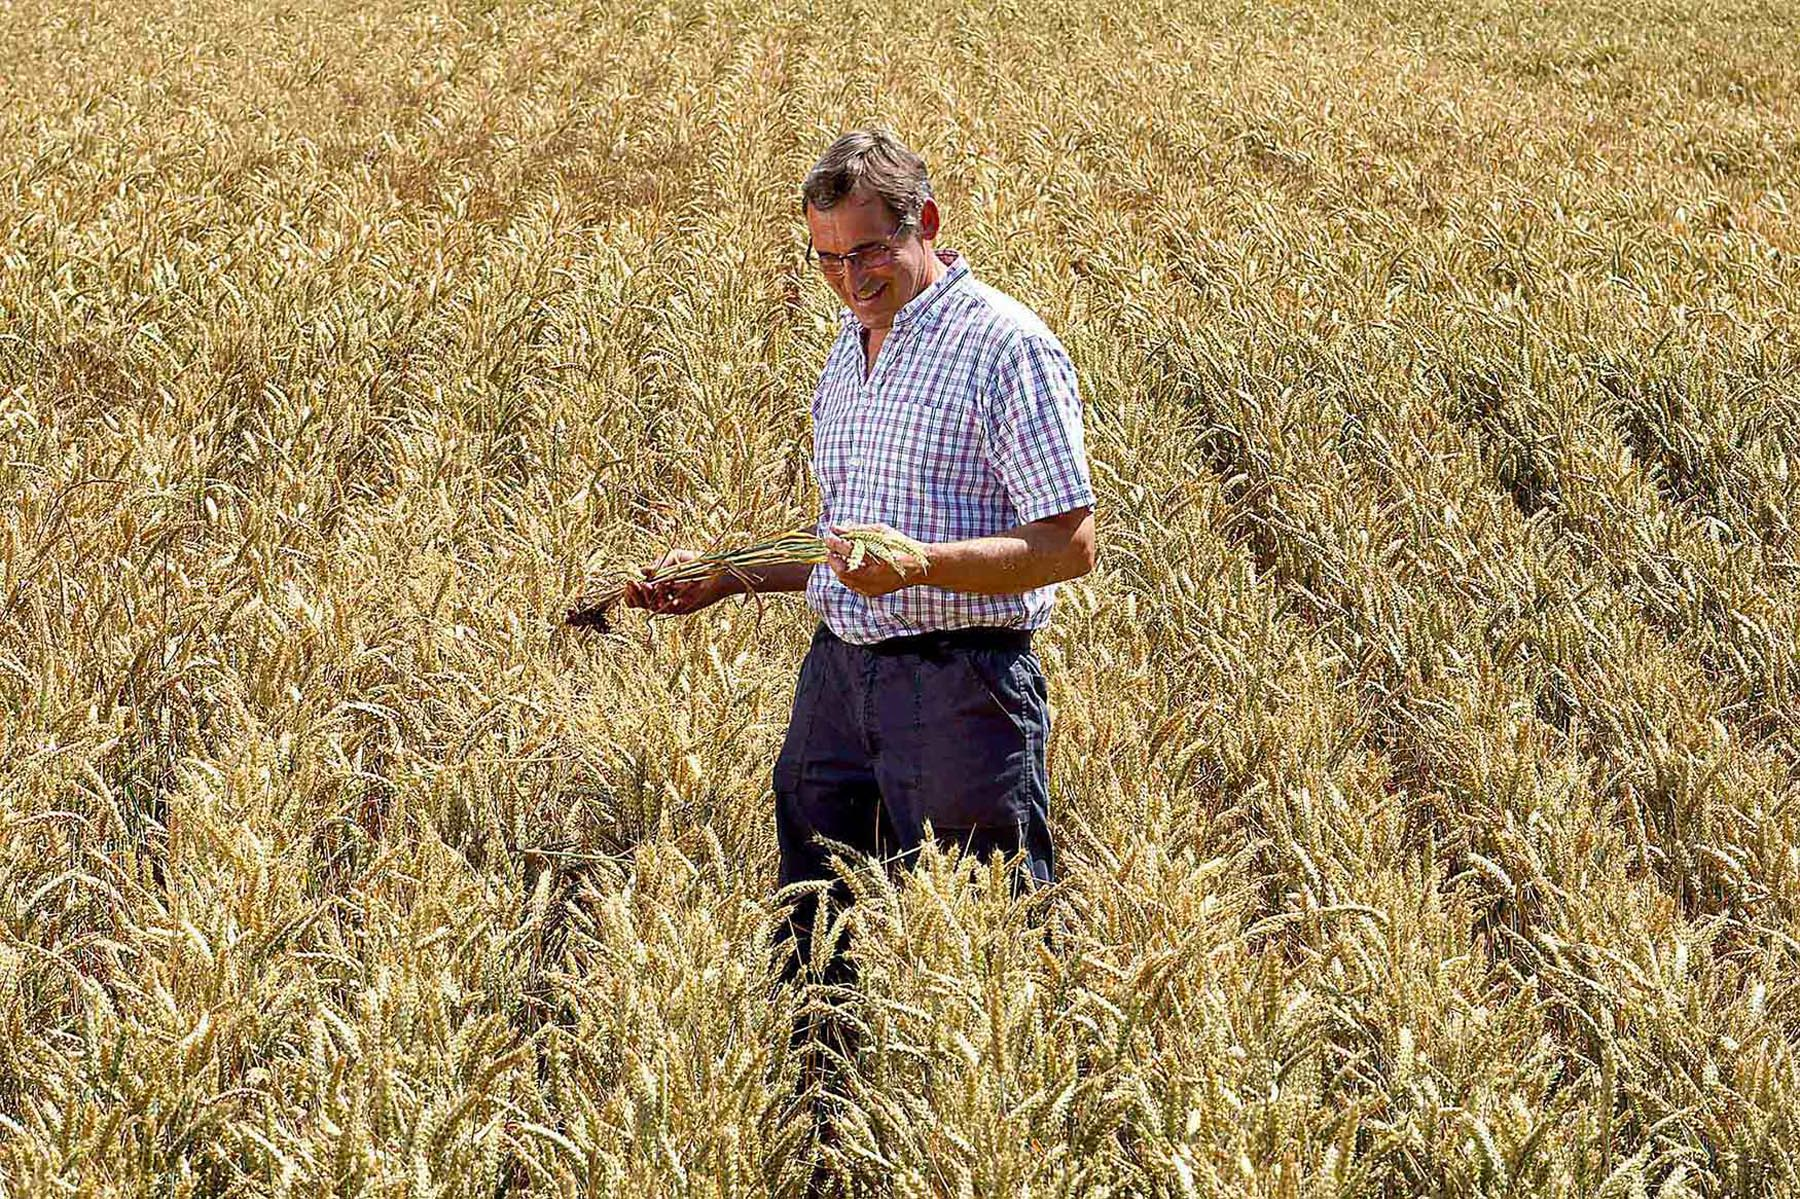 Kevin Mallett Man In a Cornfield